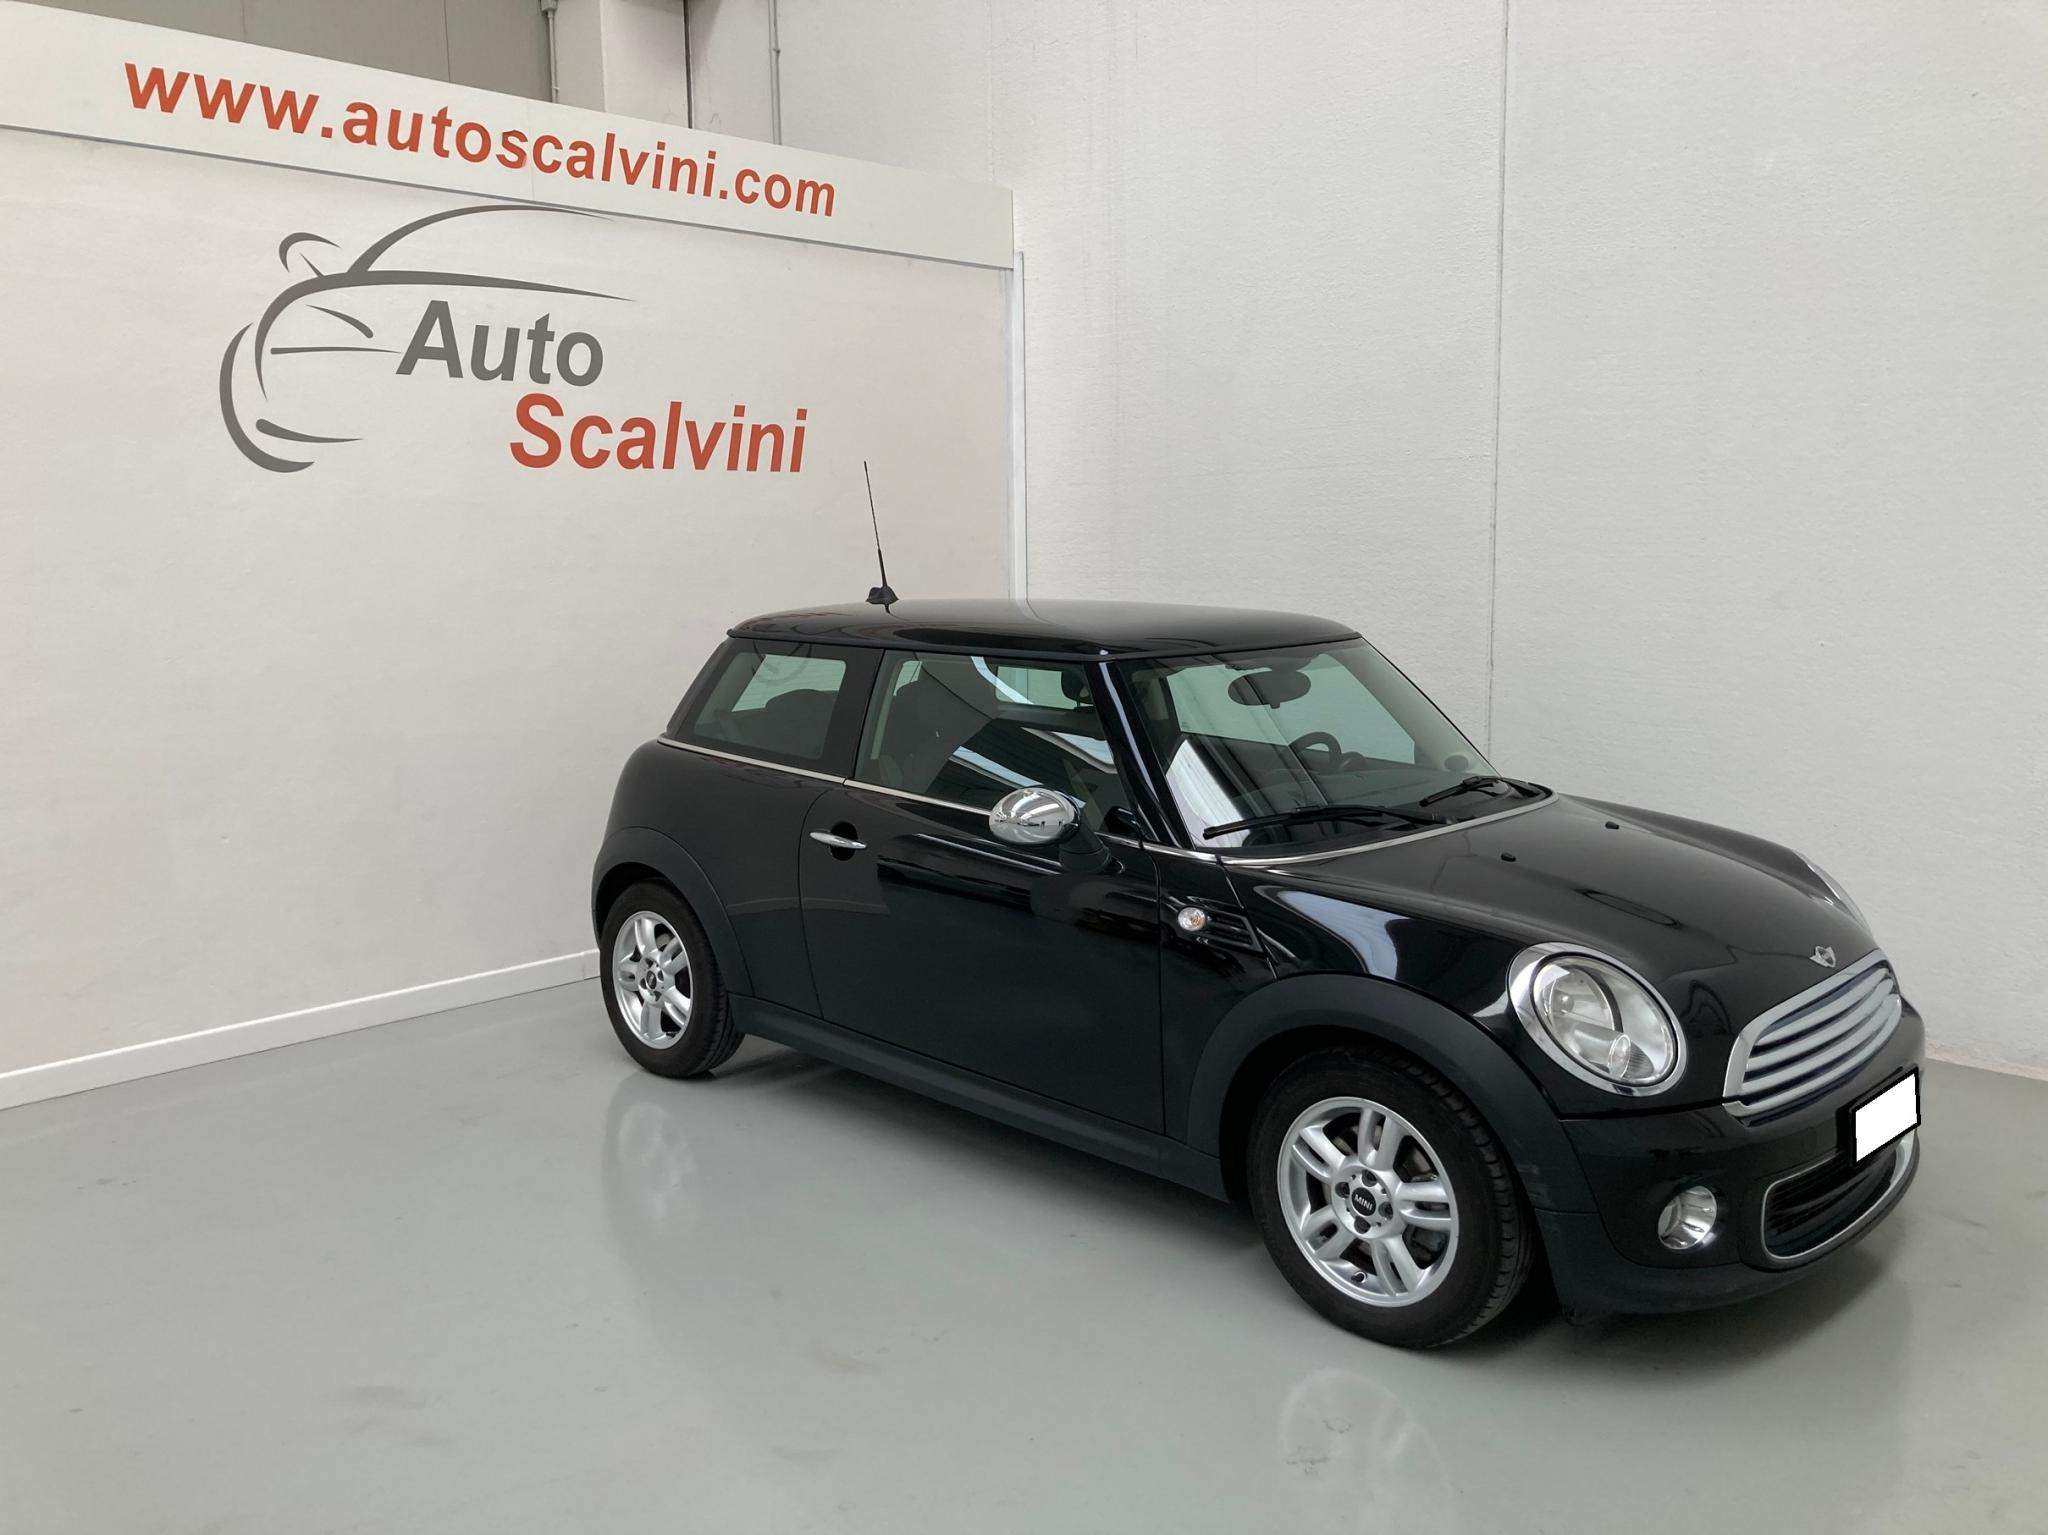 Mini One 1.6 BENZ 75CV HATCHBACK #KM CERTIFICATI #NEOPATENTATI